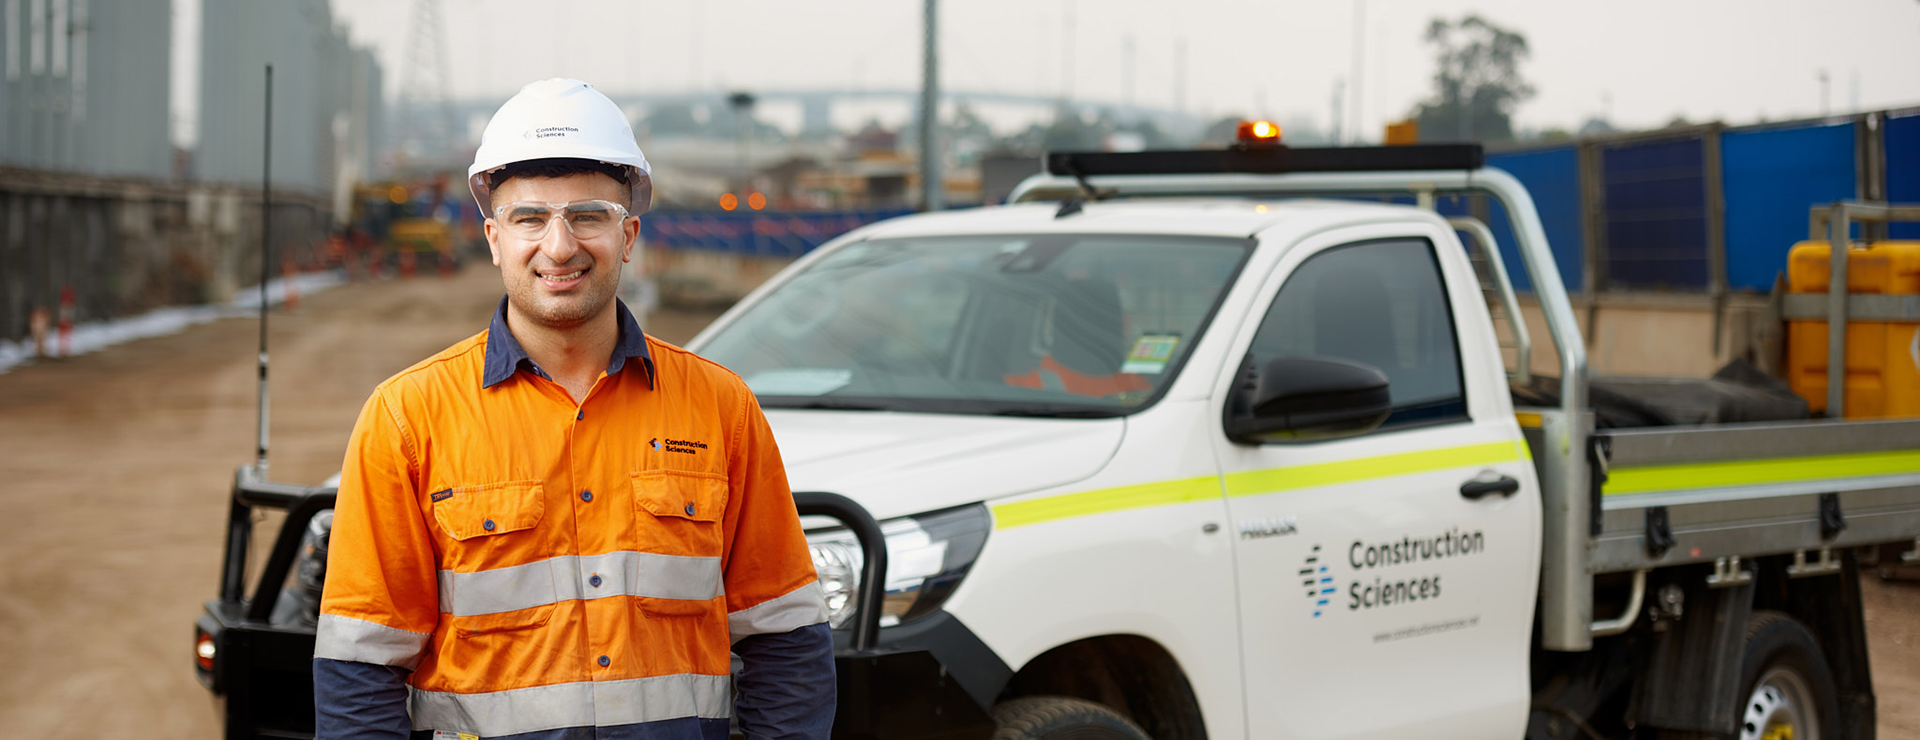 man with ute at industrial site